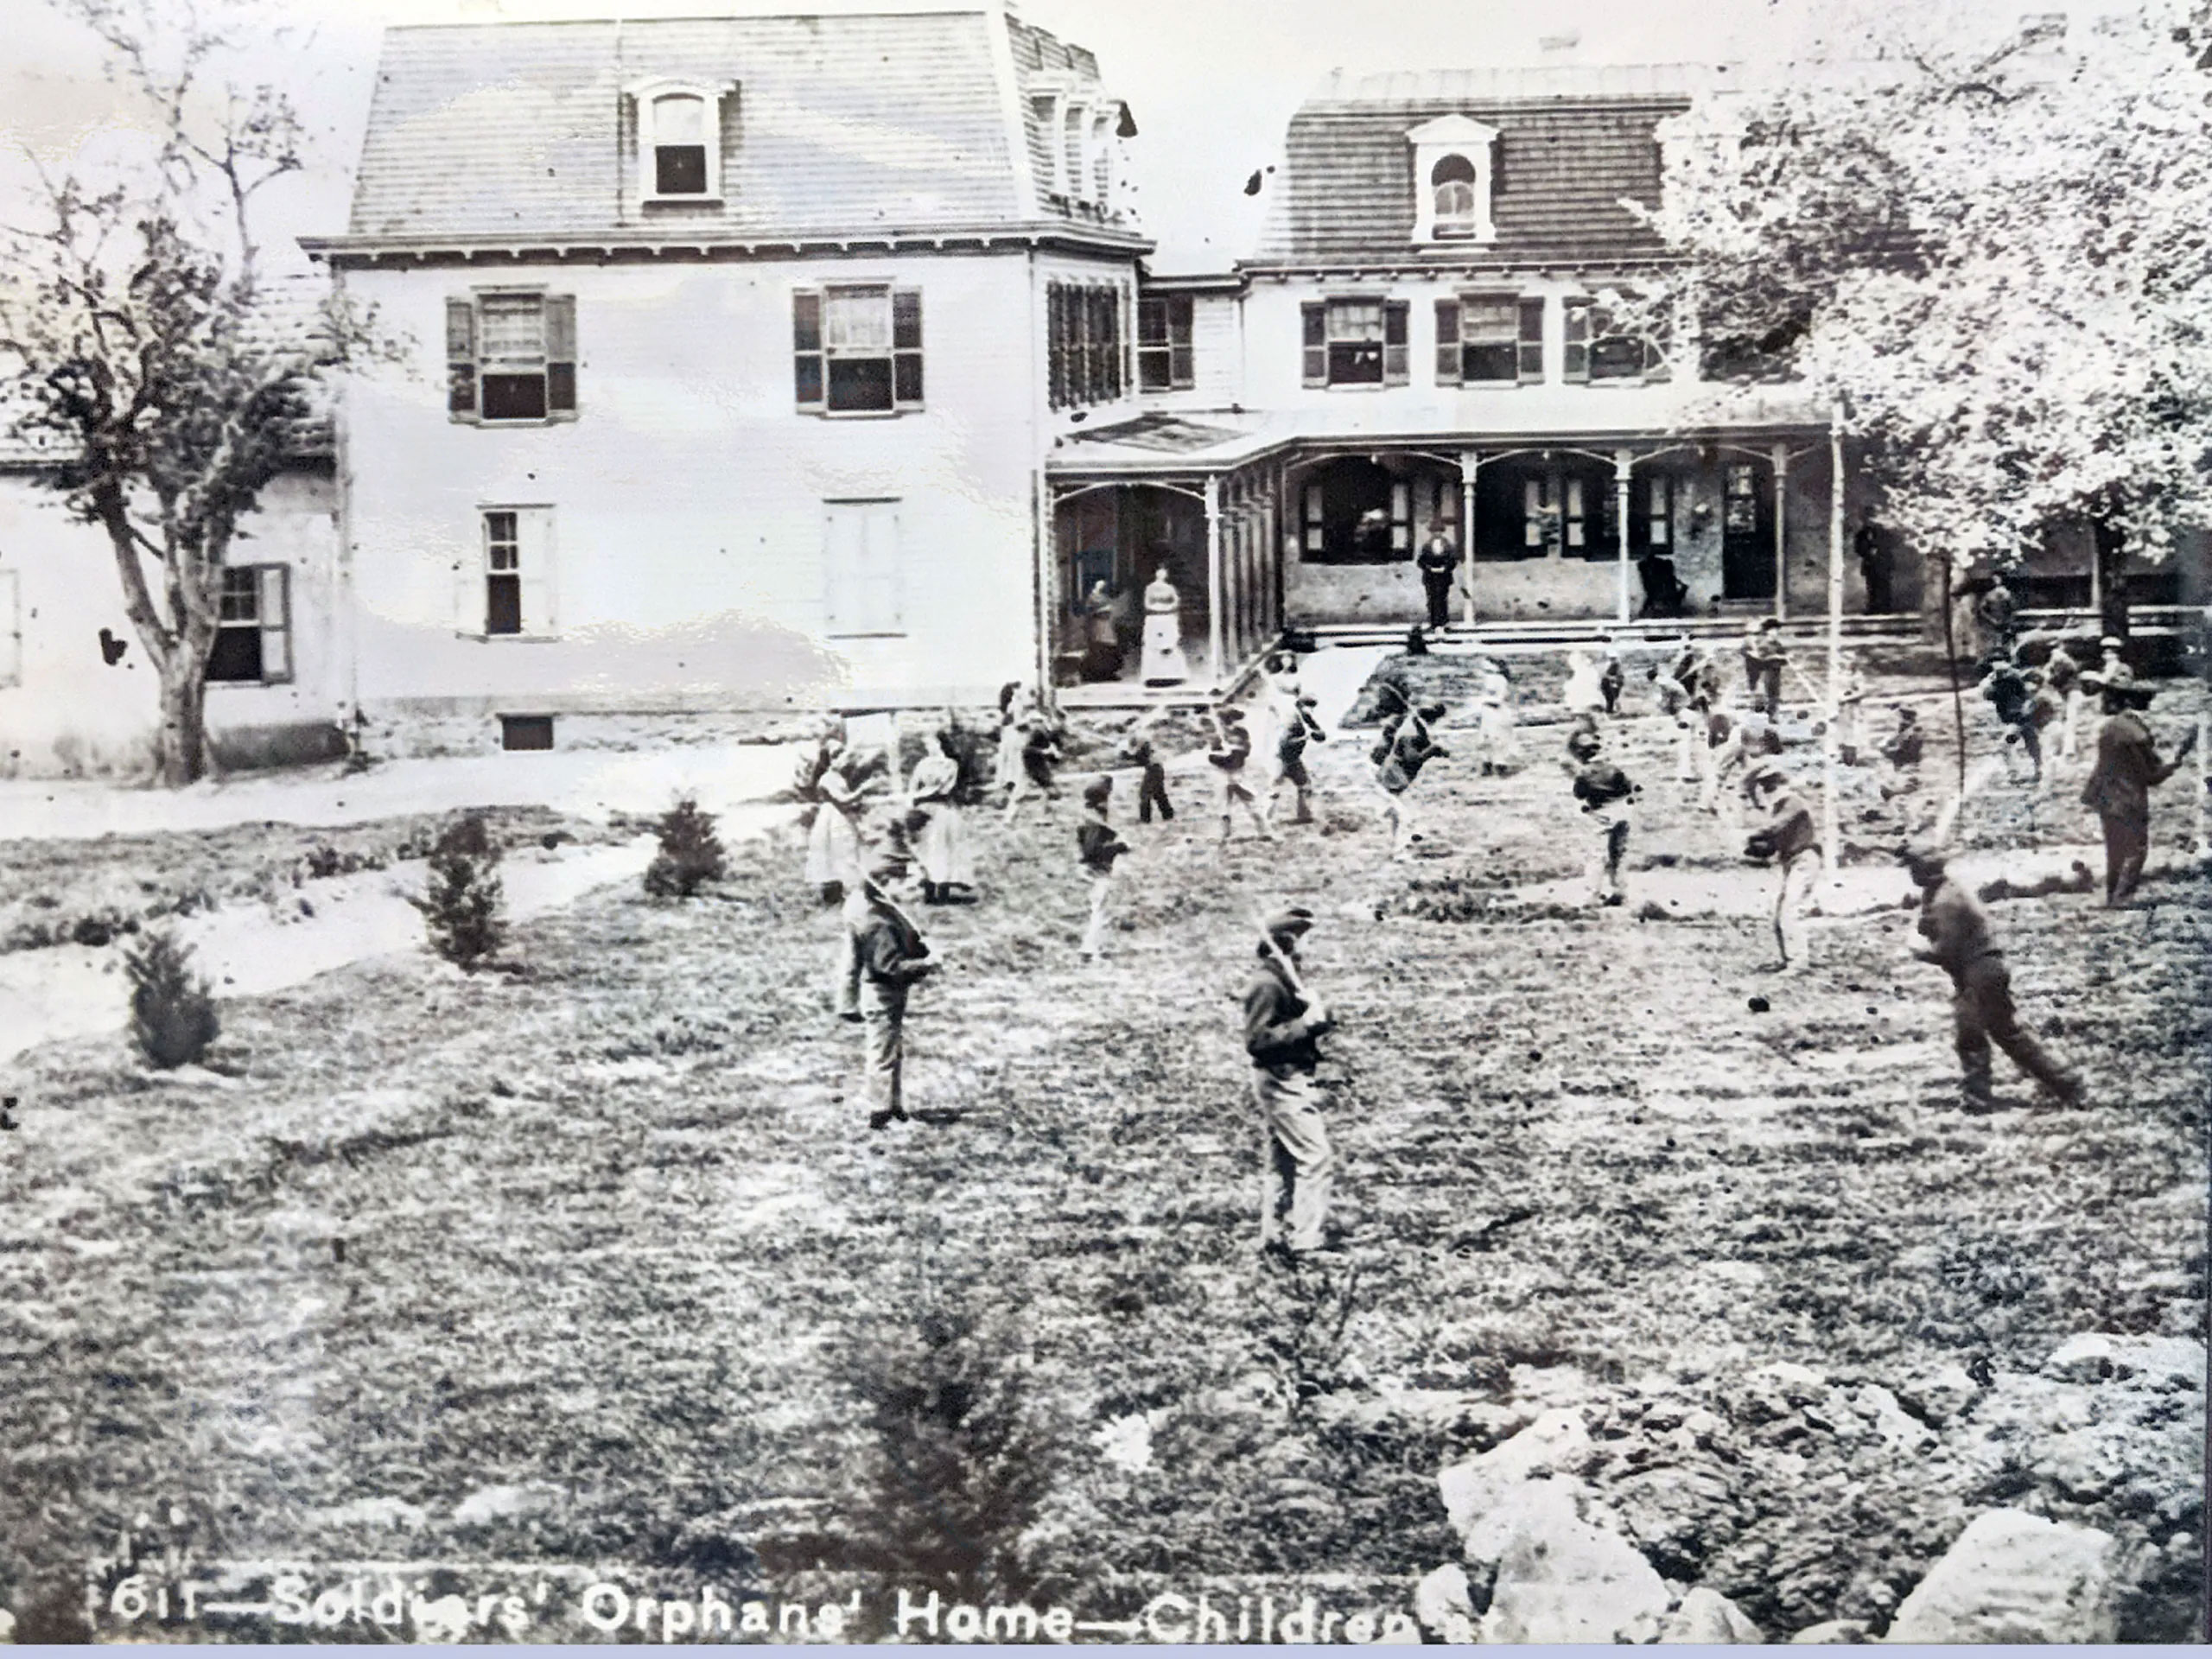 Hauntings at Children's Orphanage, Civil War Ghosts